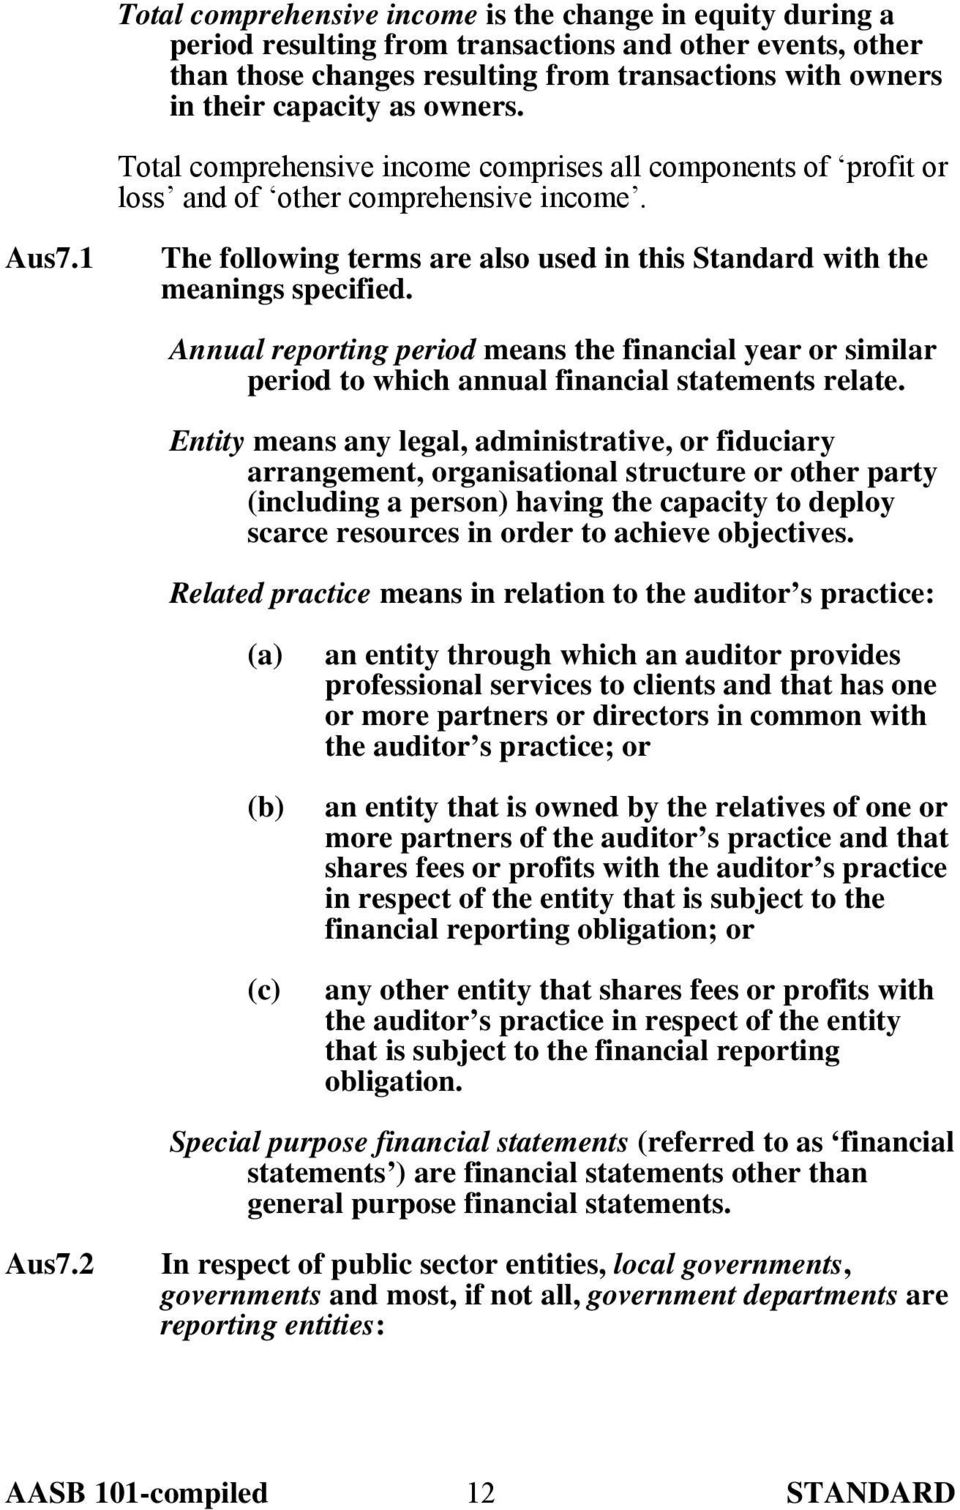 Annual reporting period means the financial year or similar period to which annual financial statements relate.